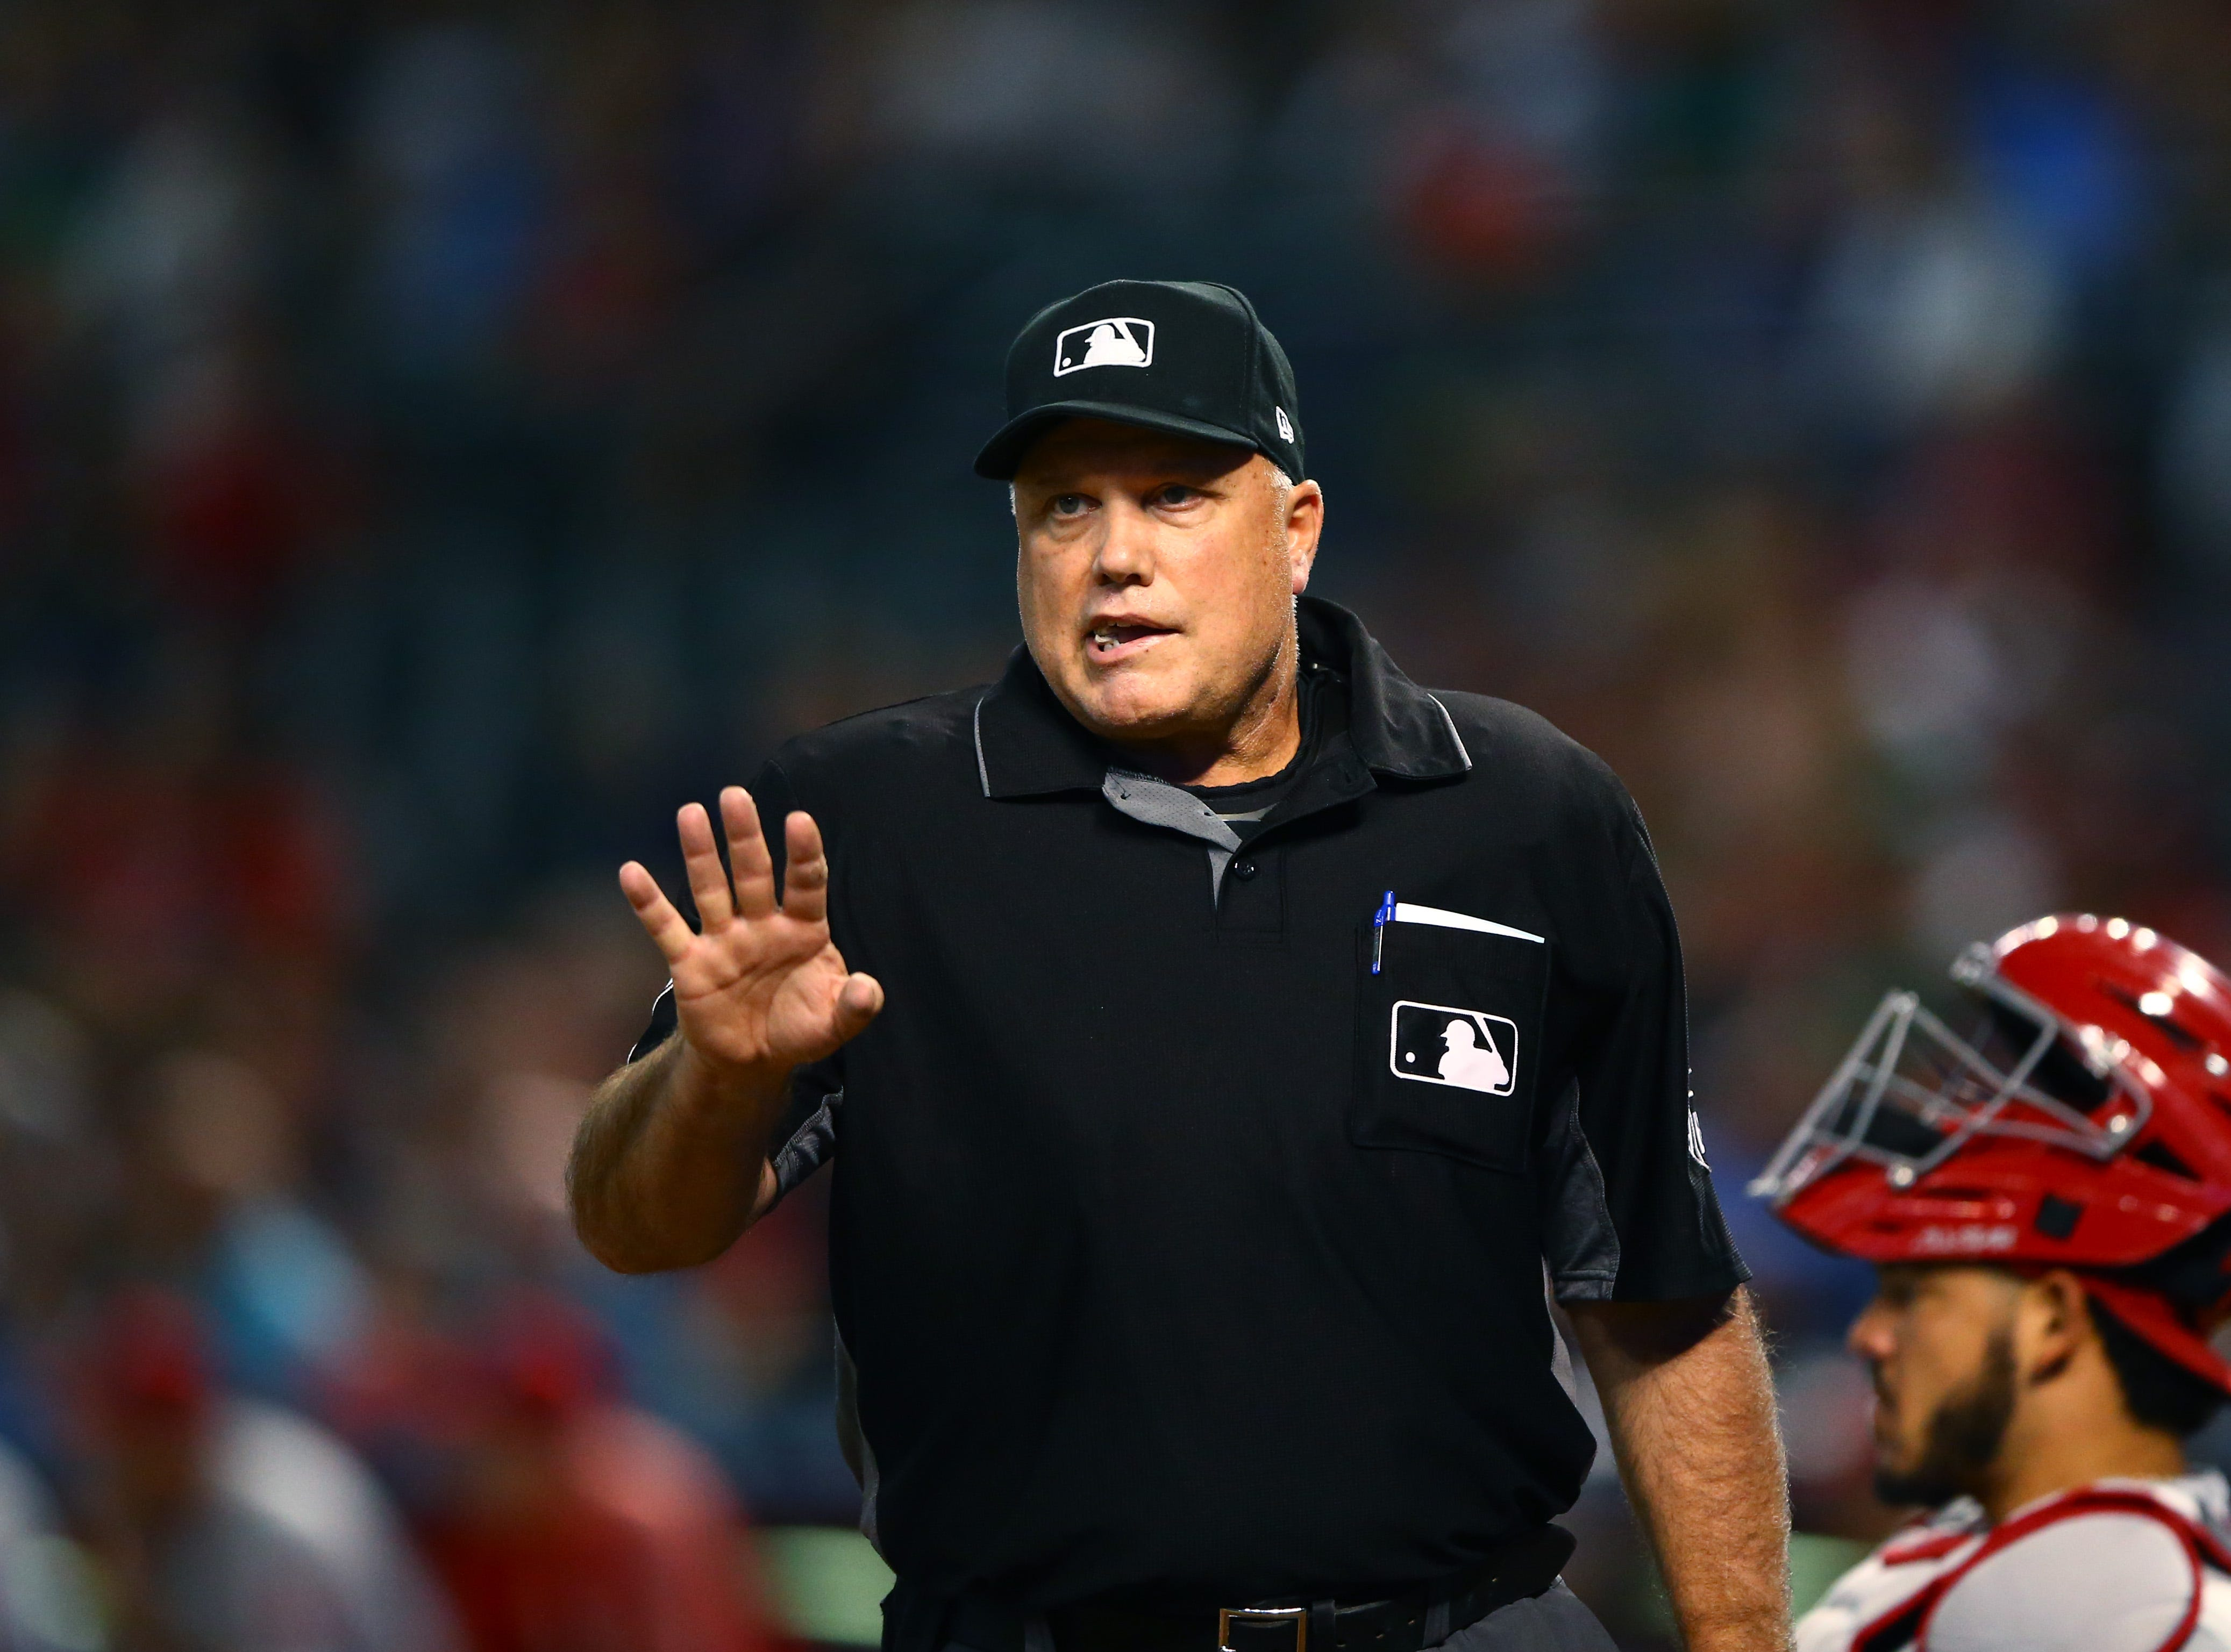 MLB umpire Brian O'Nora pleads not guilty after being arrested in sex sting